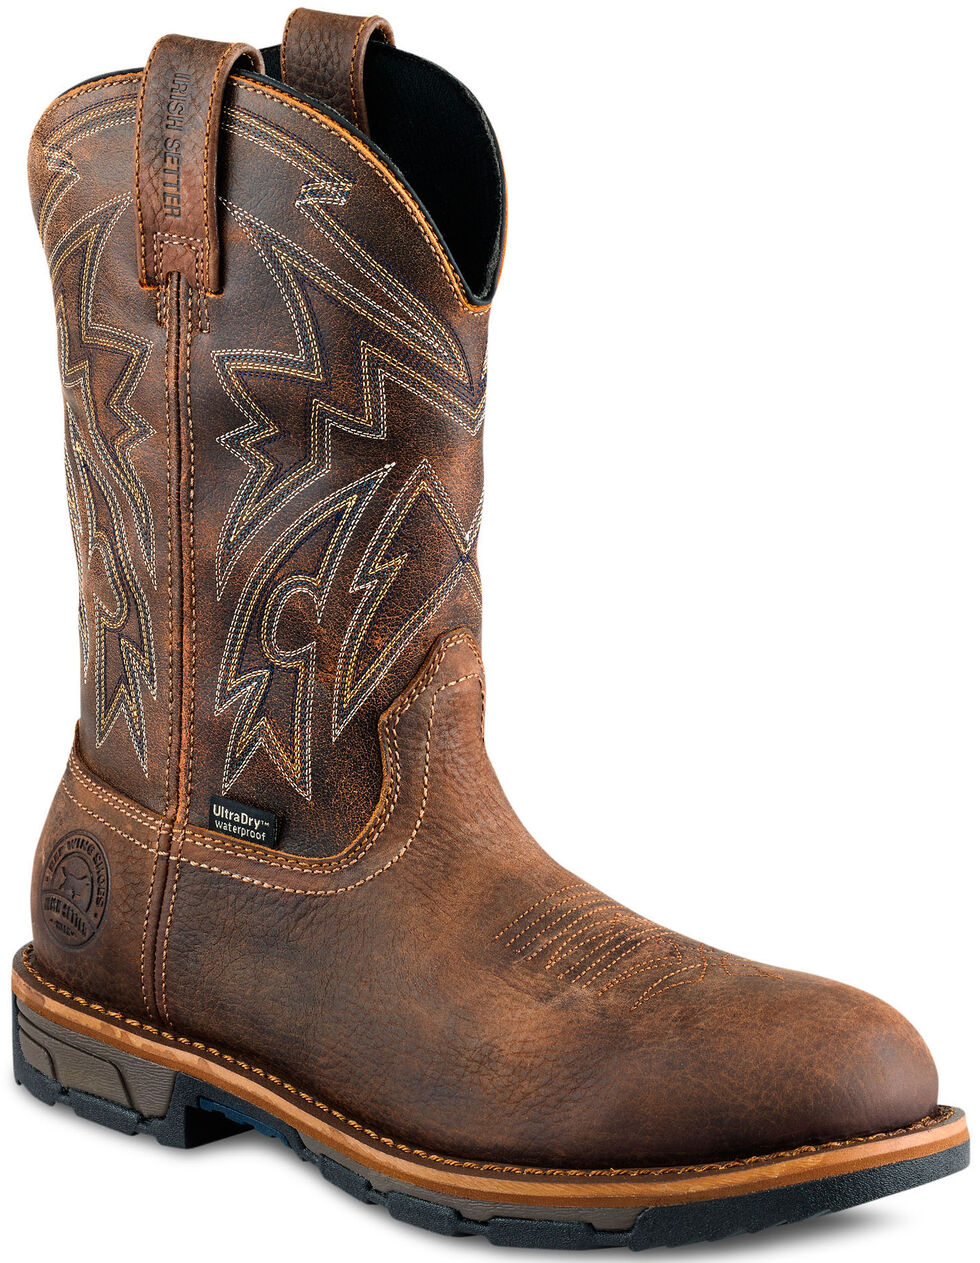 Irish Setter by Red Wing Shoes Men's Distressed Brown Marshall Work Boots - Steel Toe , Brown, hi-res